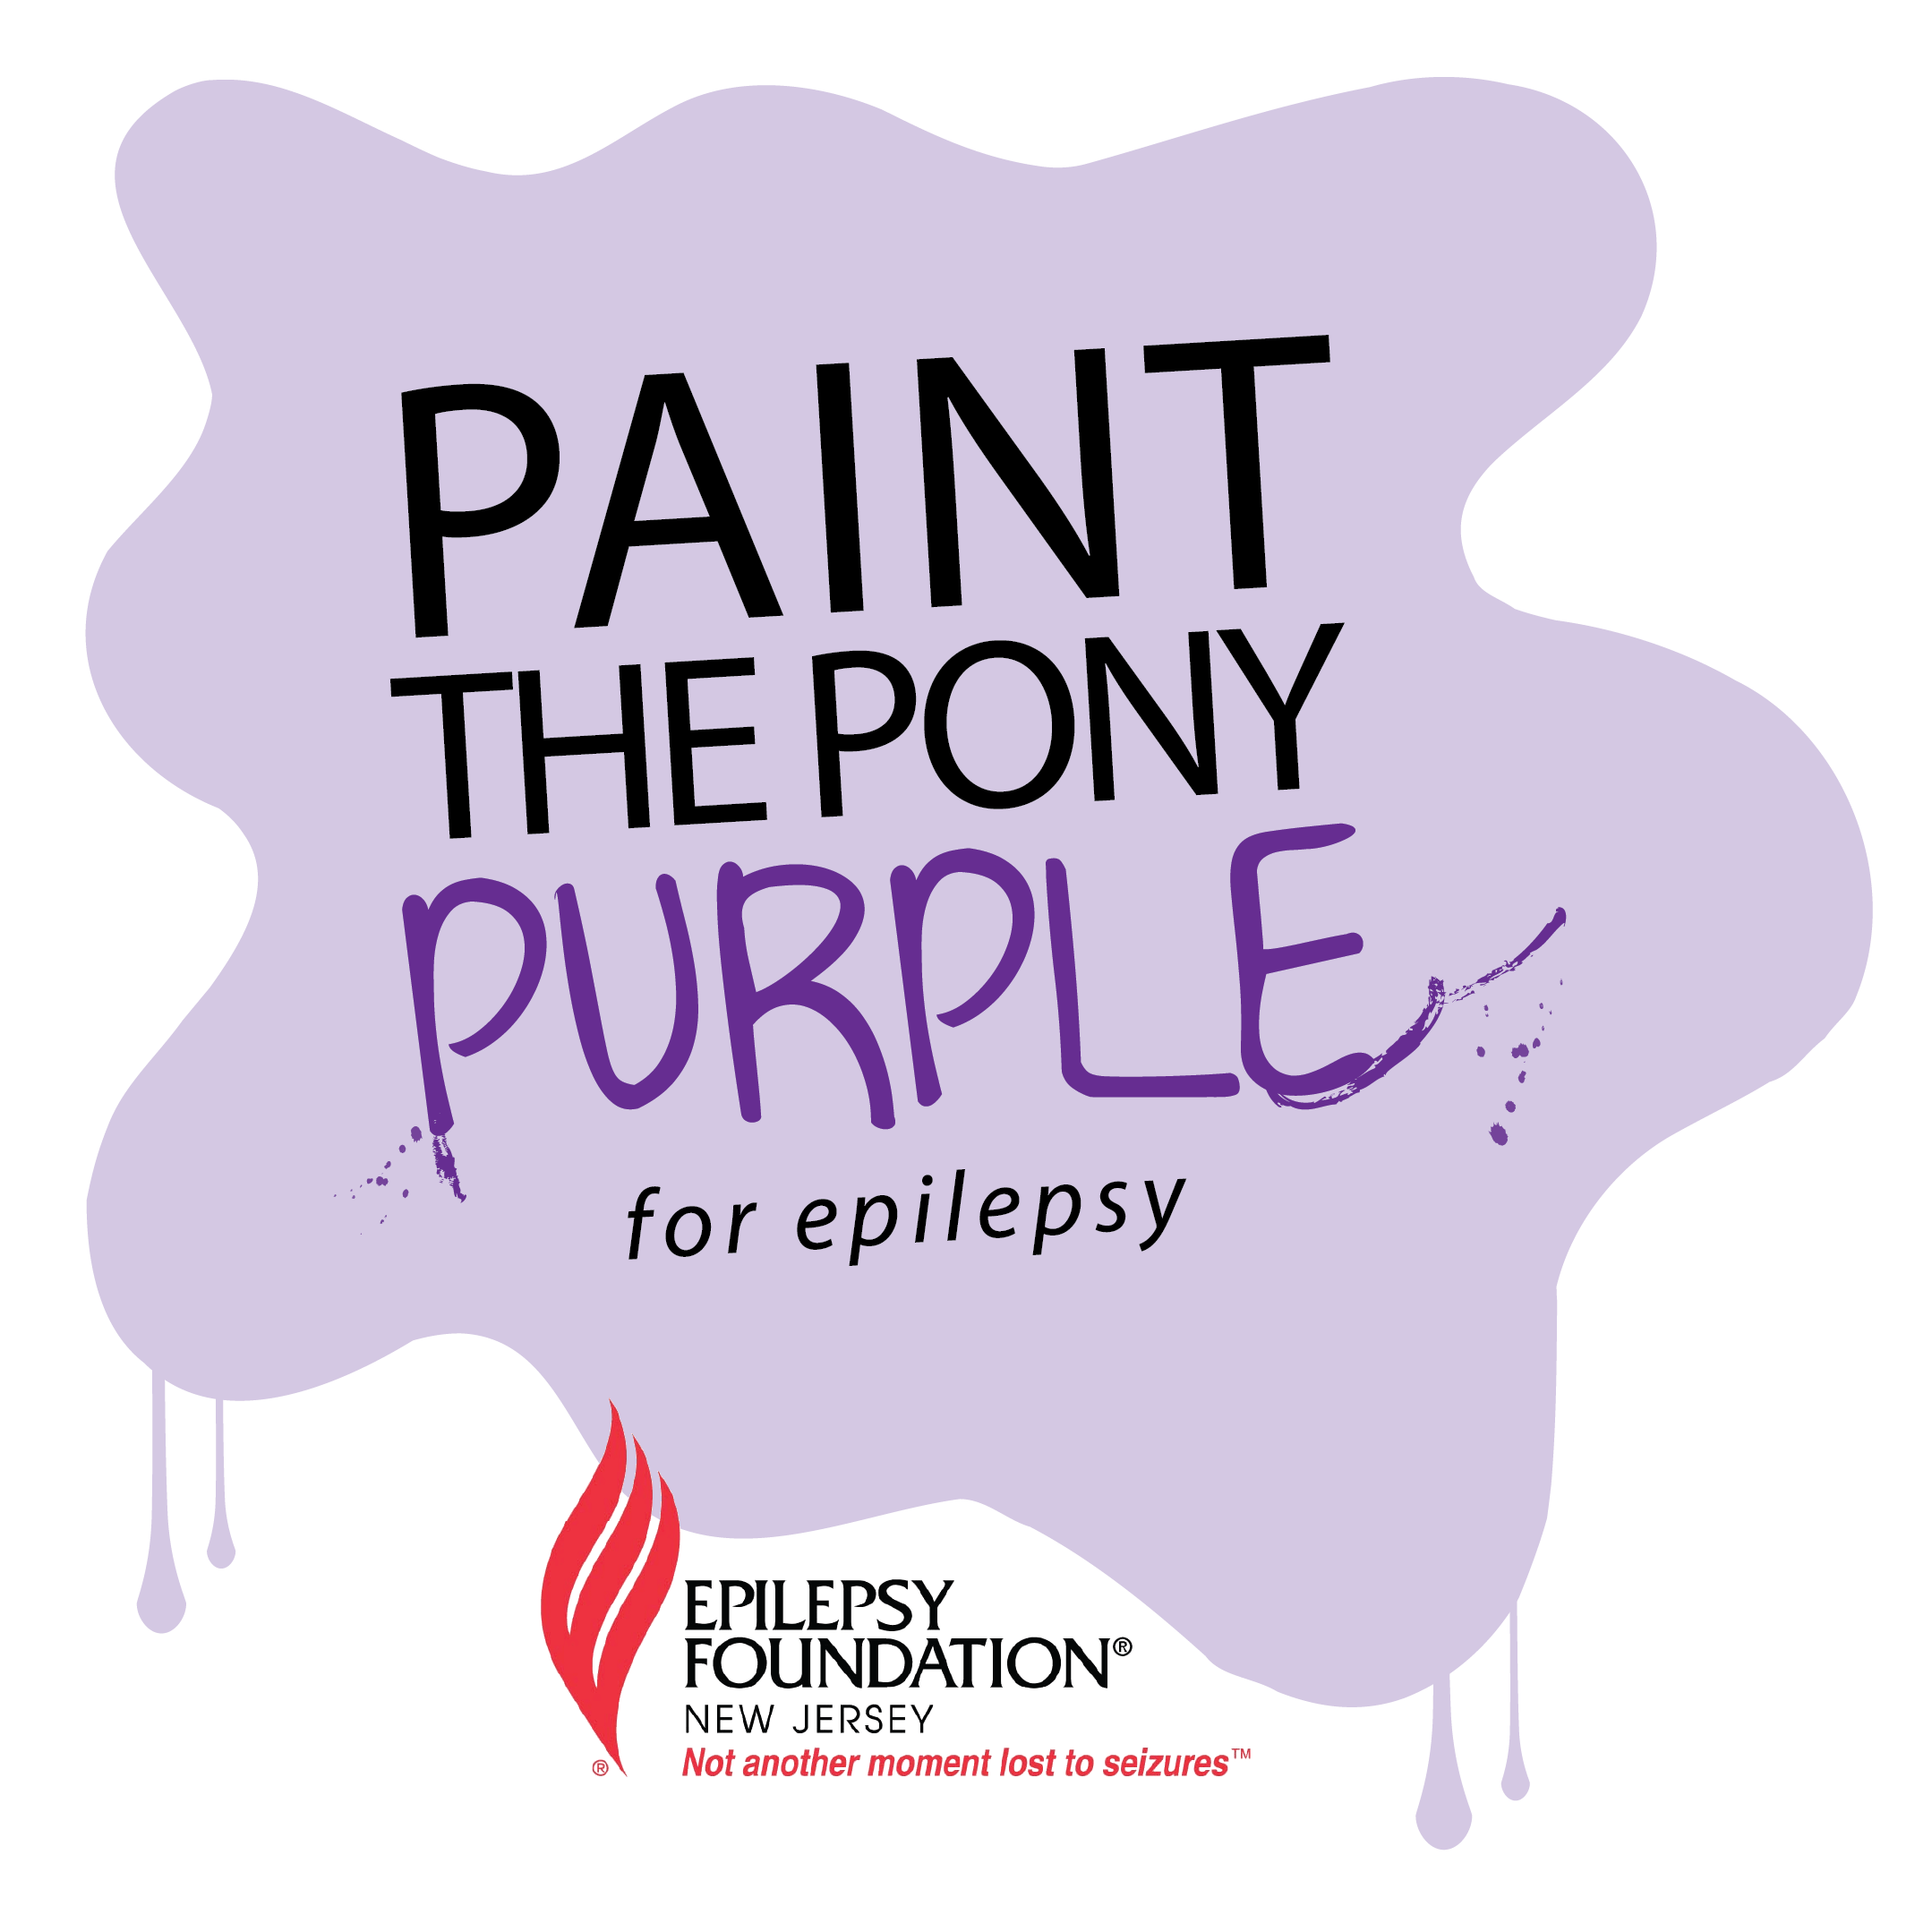 Rock out to raise epilepsy awareness March 22-24